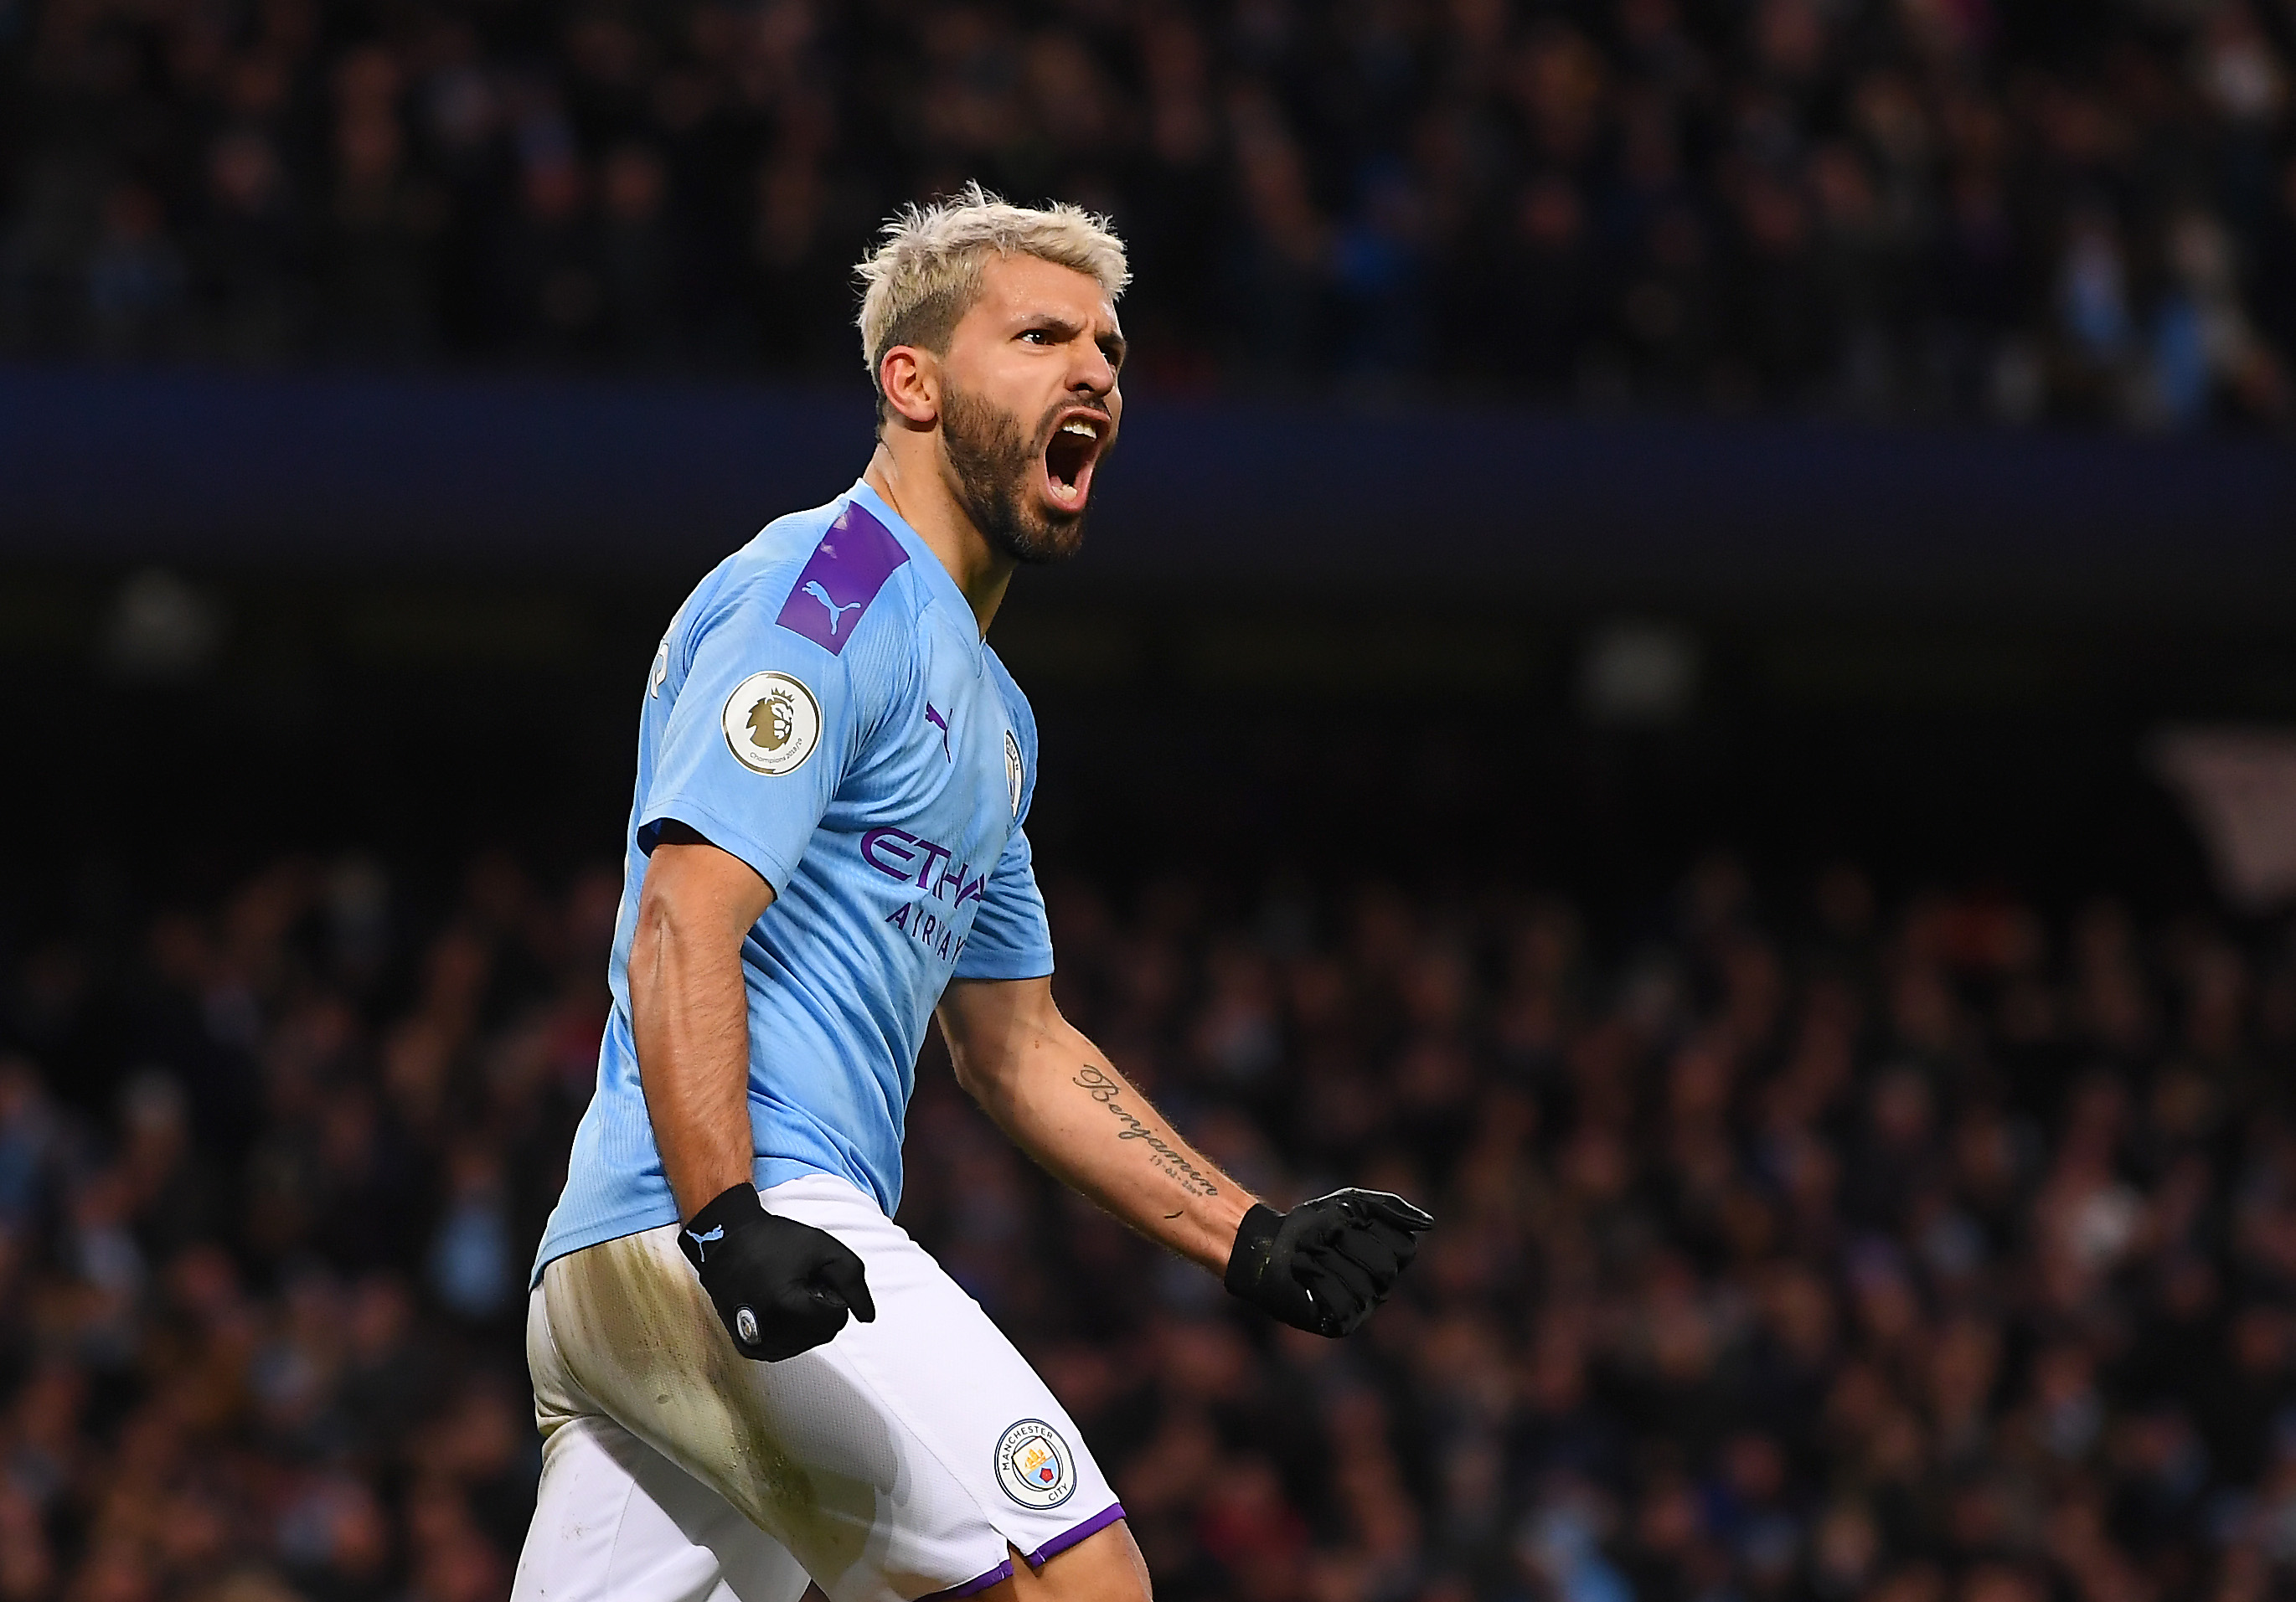 European Giants Want Sergio Aguero - Aguero celebrates a goal